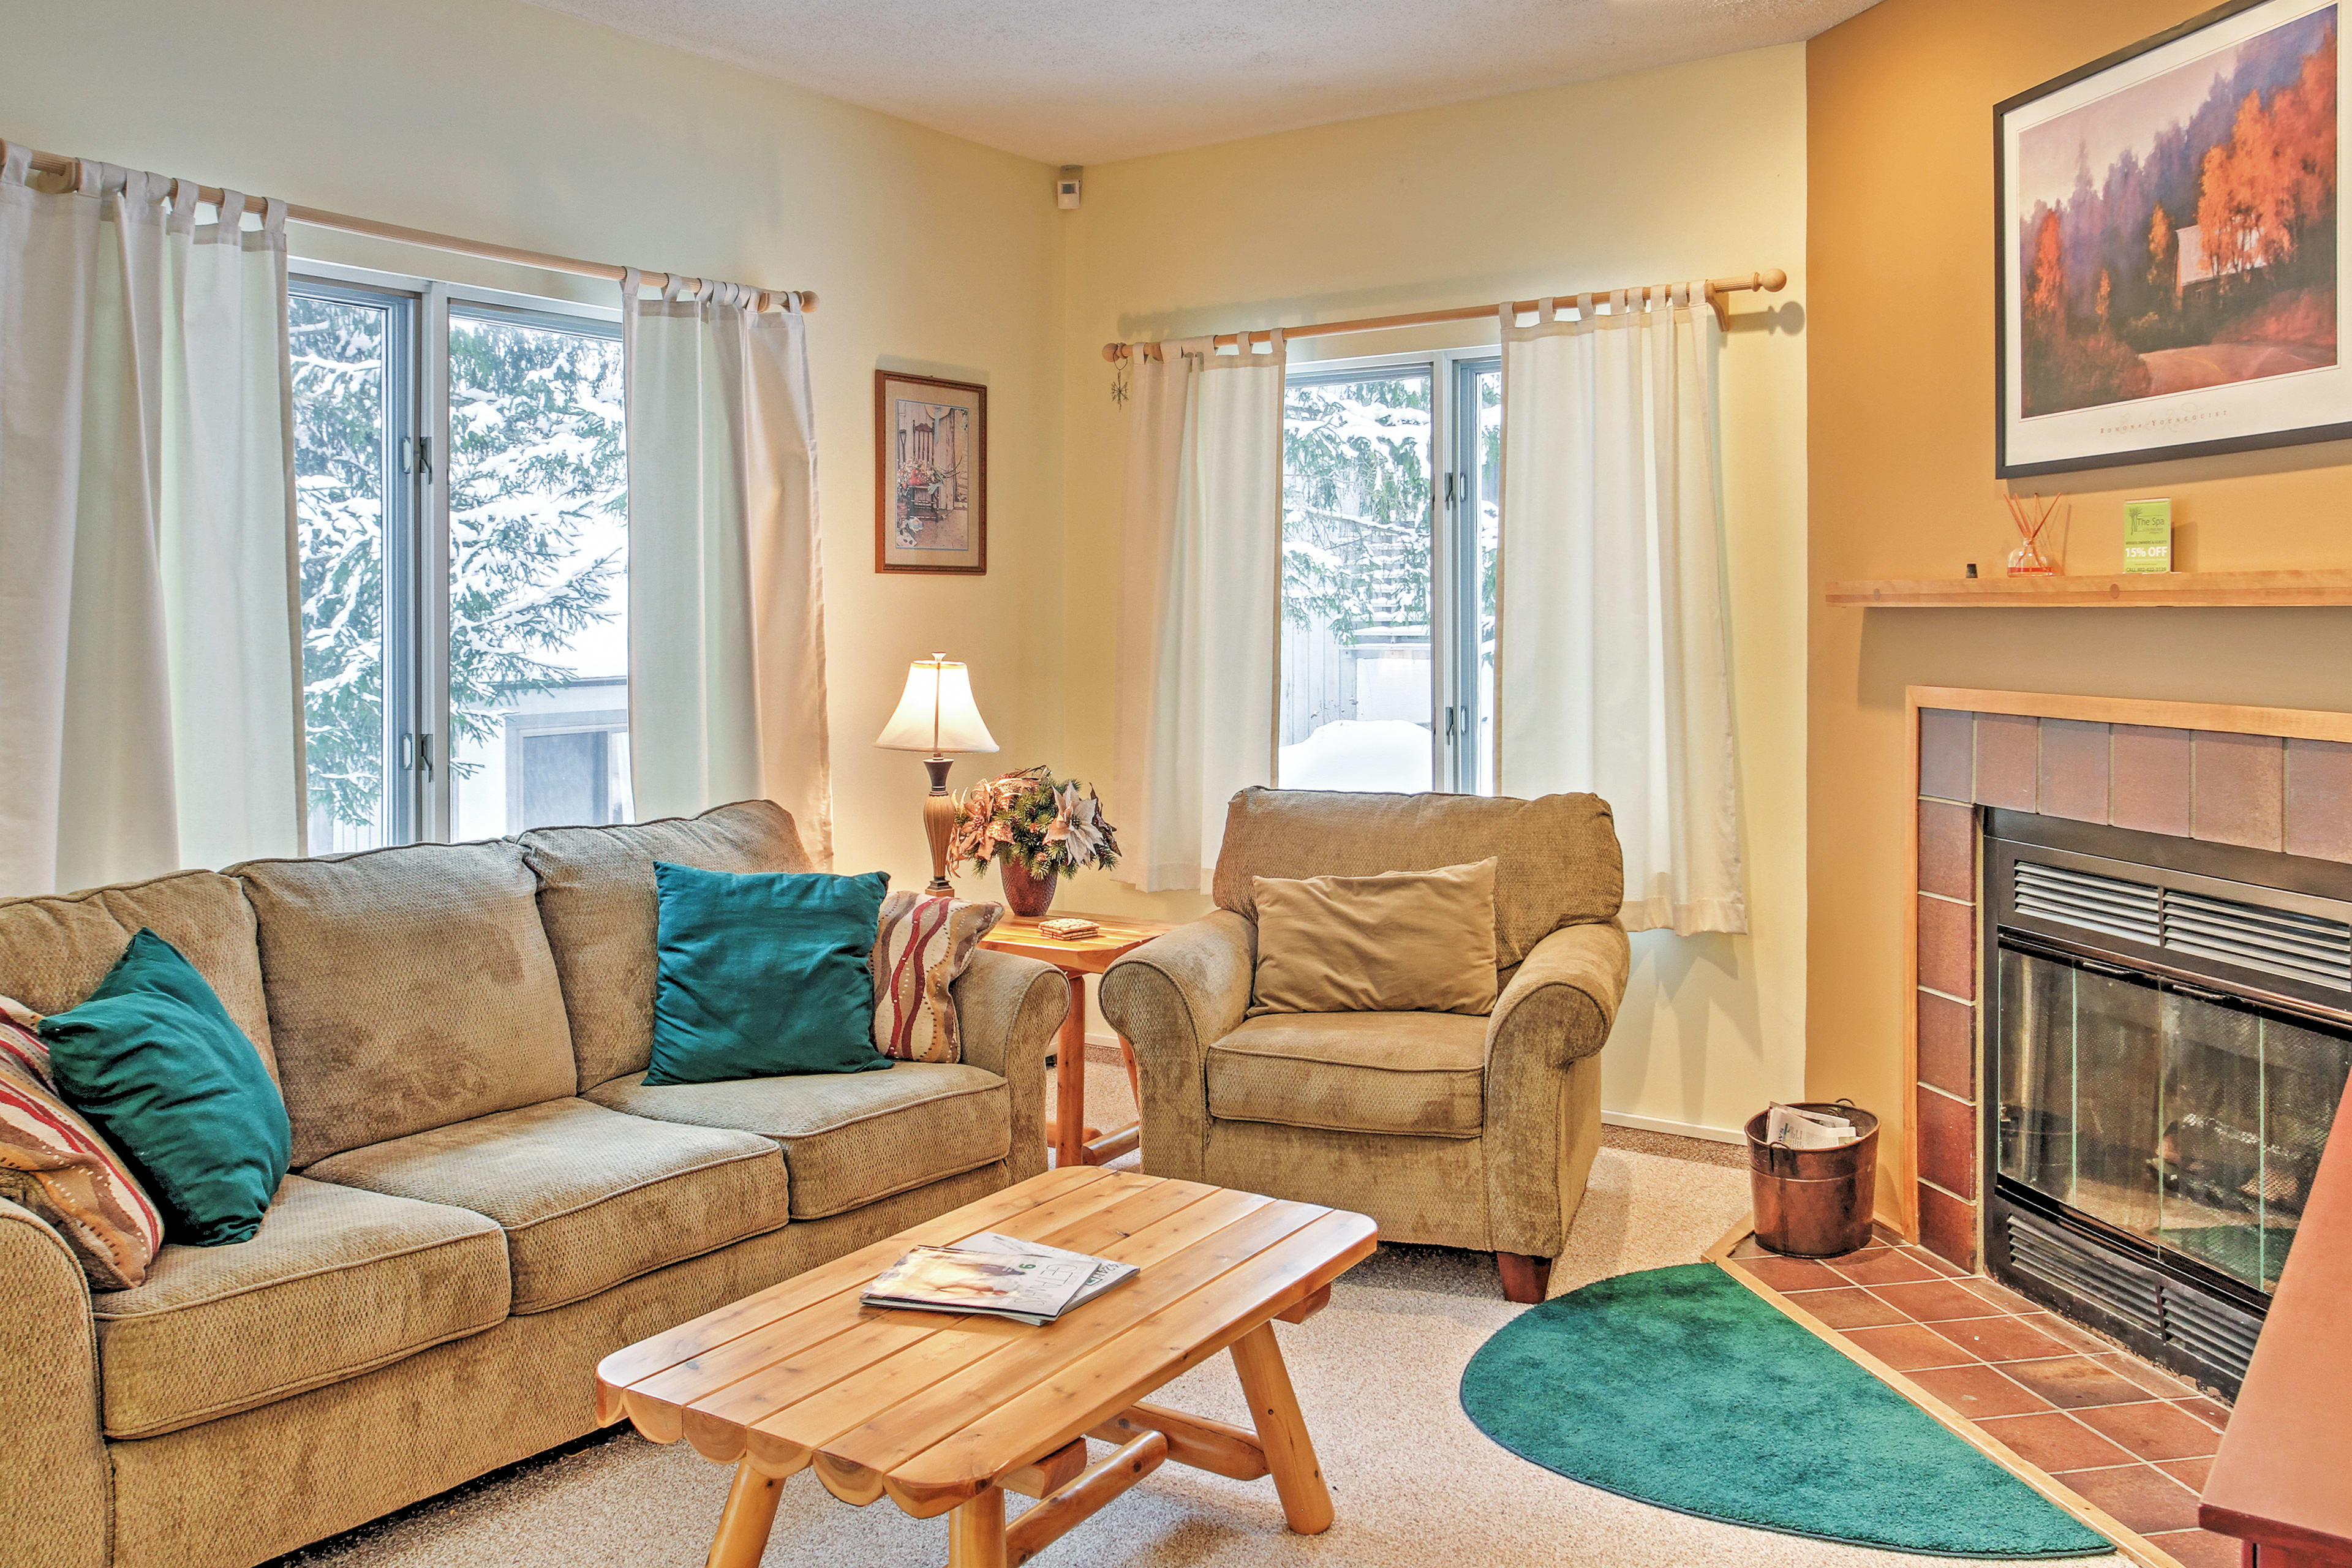 There's plenty of comfortable seating for everyone in the living room!